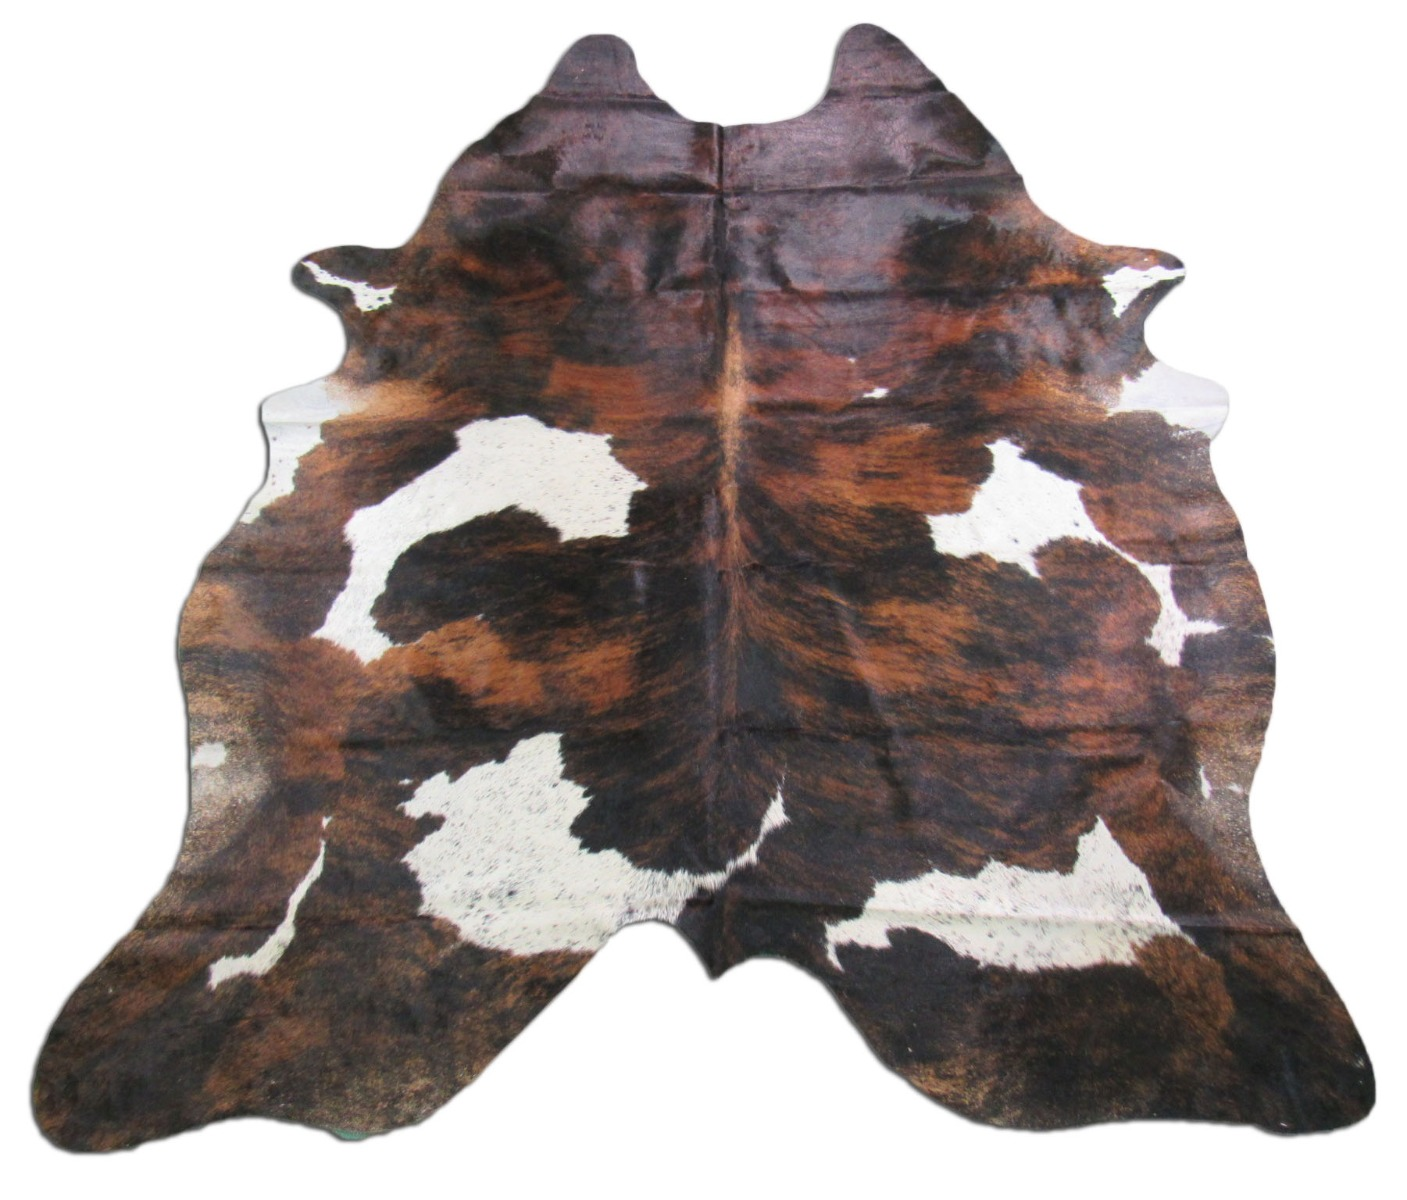 A-1248 Tricolor Speckled Cowhide Rug Size: 7 1/2' X 7 1/2'